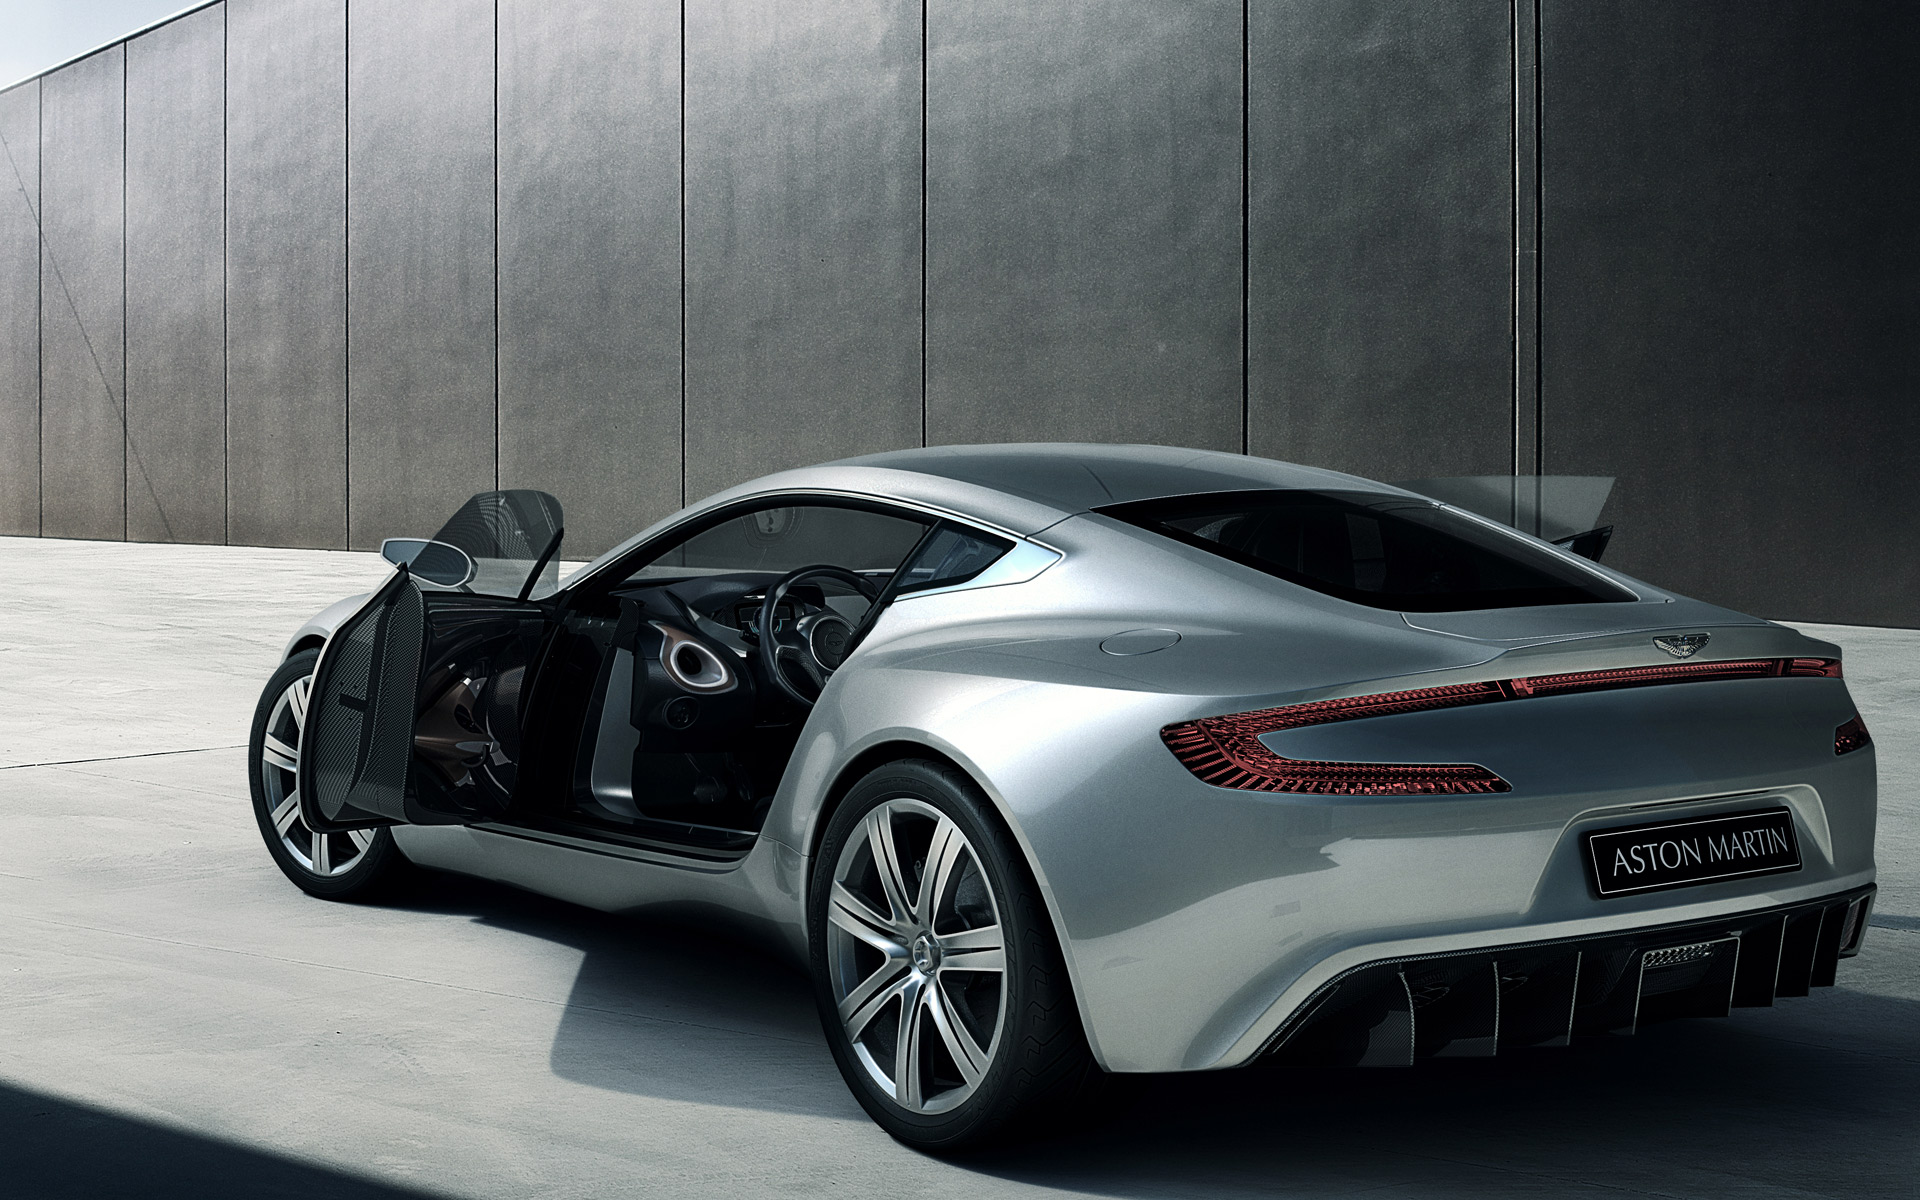 Aston Martin One 77 Wallpaper Hd wallpaper   186897 1920x1200